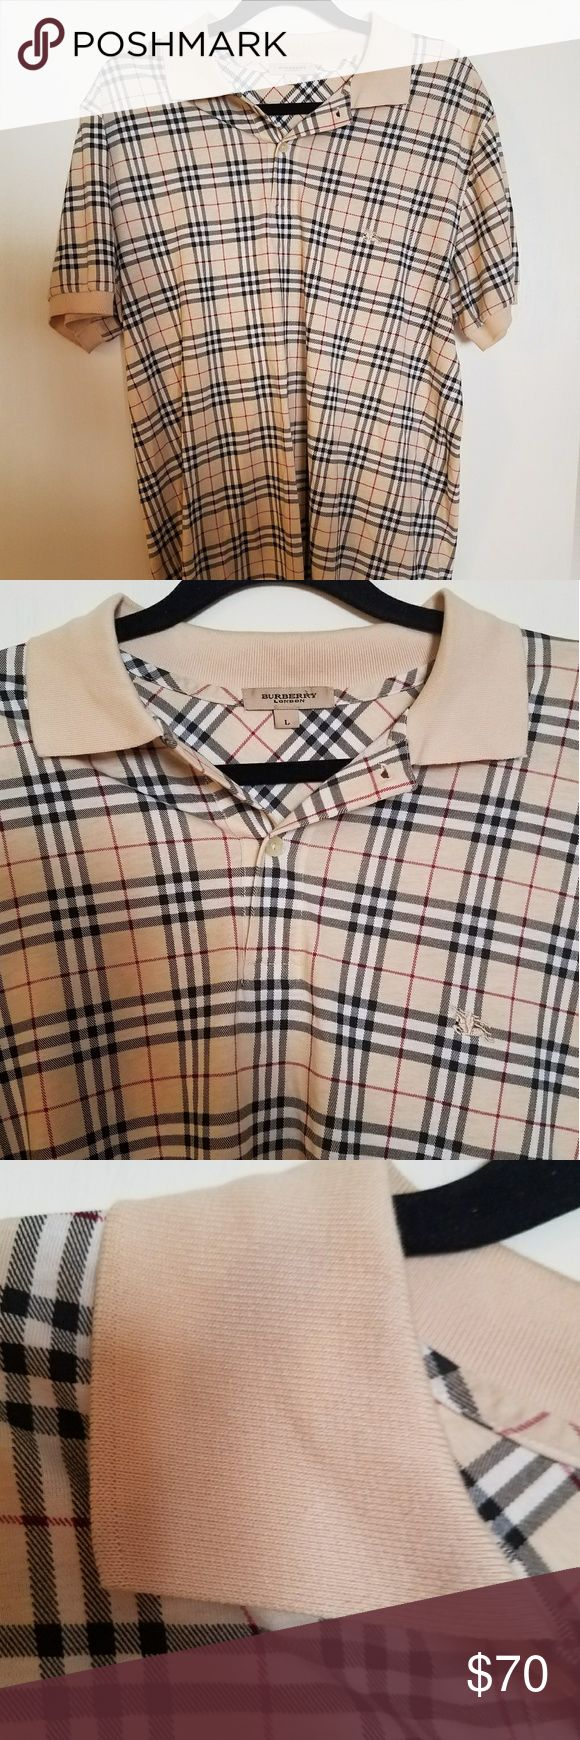 """Men's Authentic Burberry London check polo Men's Authentic Burberry London check short sleeve polo shirt.  Fantastic Condition  (see pics)  23"""" Armpit to armpit. Please compare LAST PIC  Better Price through PPal Text me  Eric 925-984-1655  Low-ball offers will be ignored, sorry no trades  If you have an offer, make an offer, don't comment and ask if I'll take a certain amount.  Thanks Burberry Shirts"""